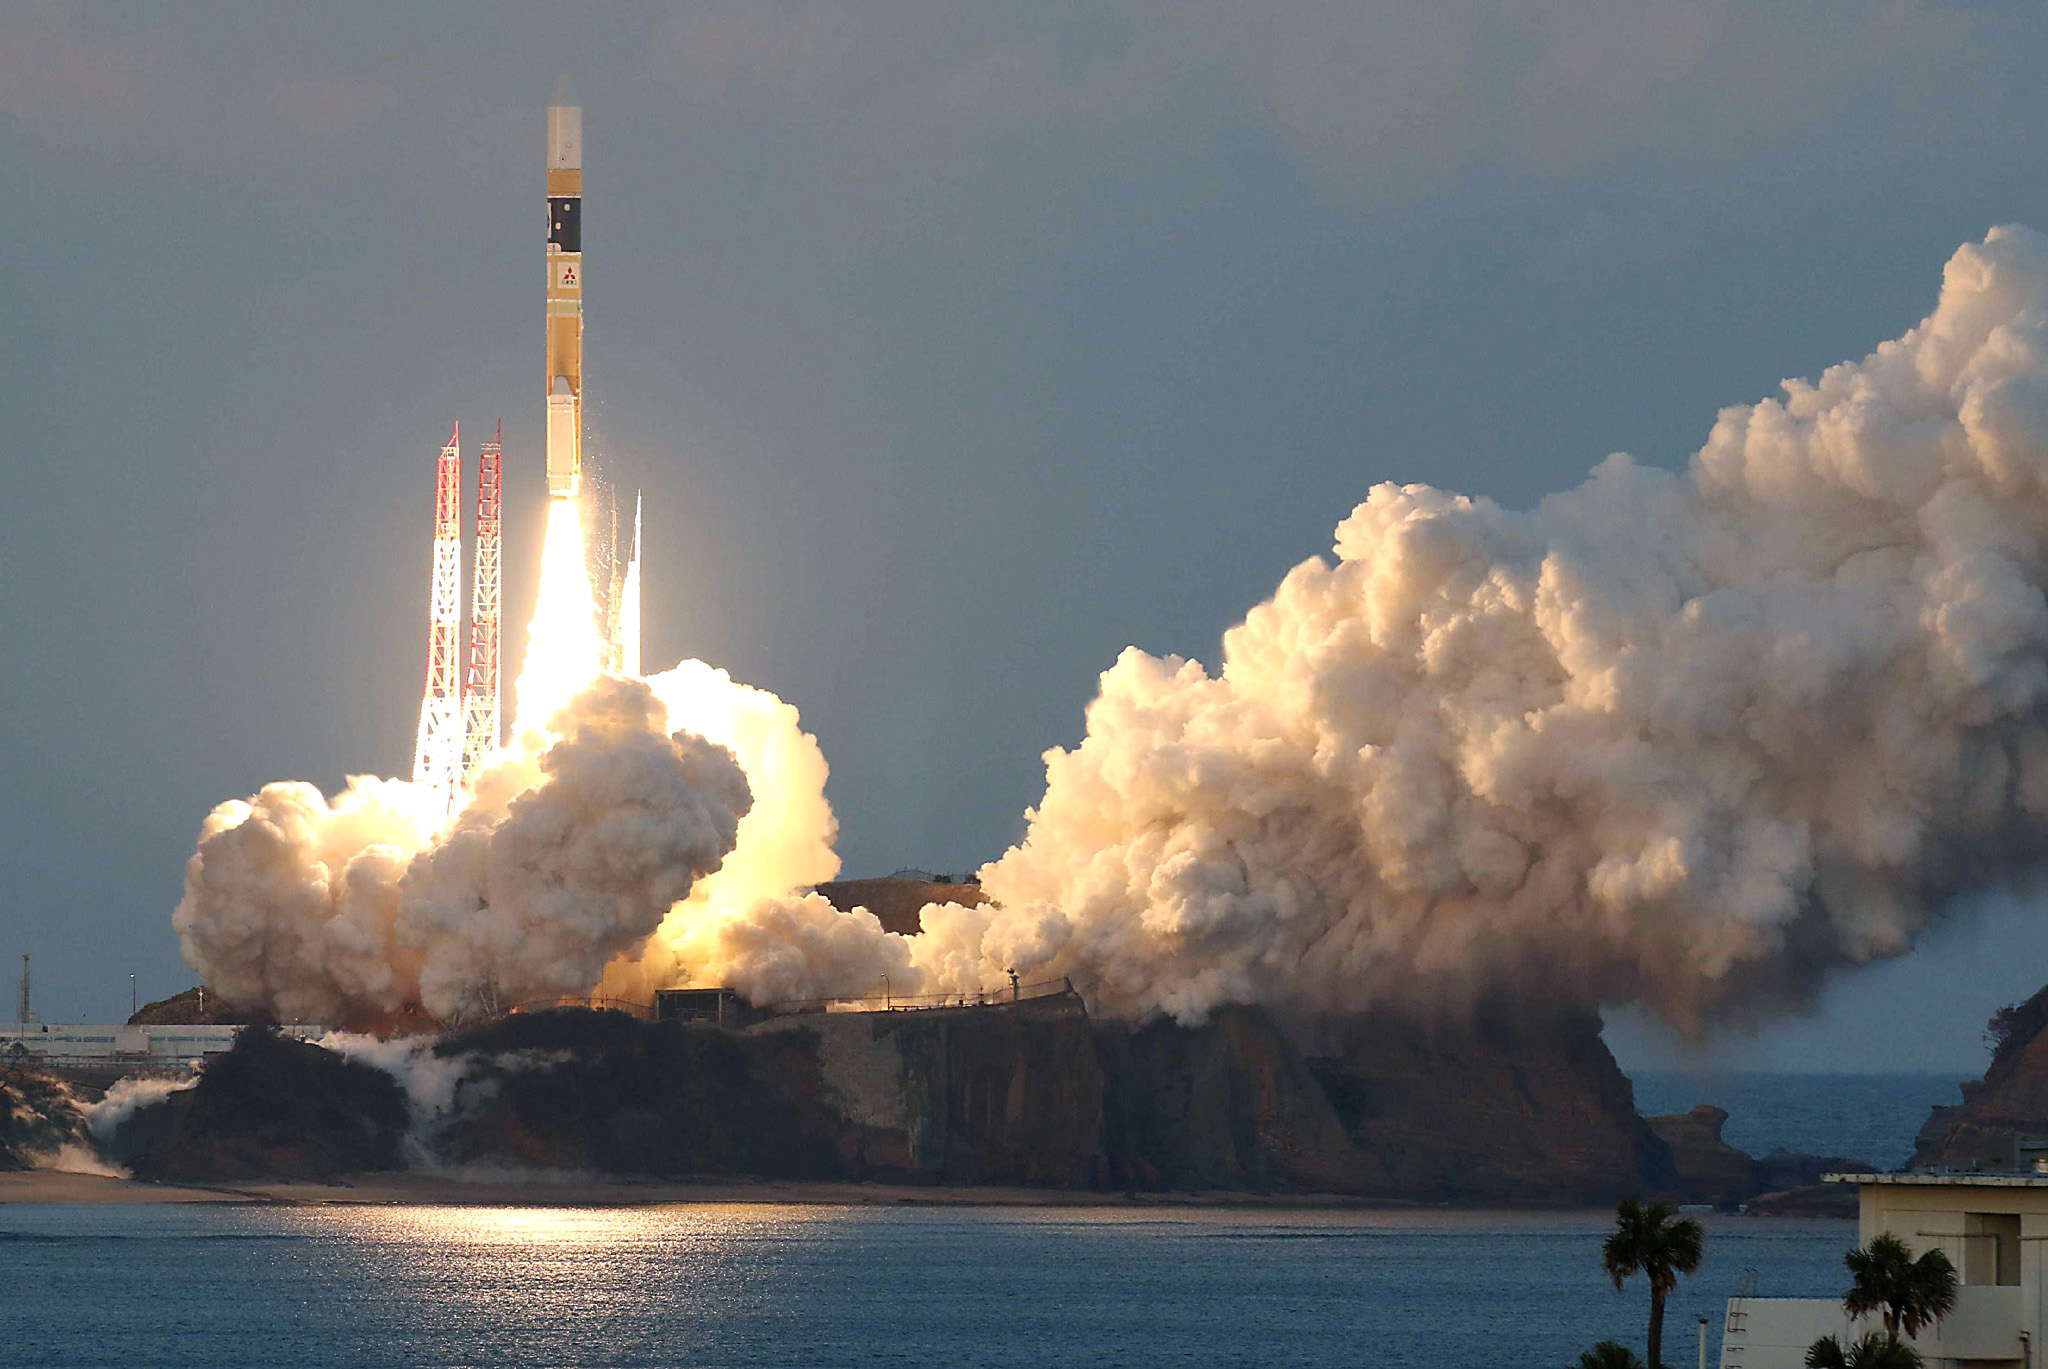 An H-2A rocket carrying the ASTRO-H sate...An H-2A rocket carrying the ASTRO-H satellite, developed in collaboration between the Japan Aerospace Exploration Agency (JAXA), NASA and other groups, lifts off at the Tanegashima Space Center in Kagoshima Prefecture, southwestern Japan on February 17, 2016. Japan successfully launched a jointly developed space observation satellite on February 17 tasked with studying mysterious black holes, the country's space agency said.